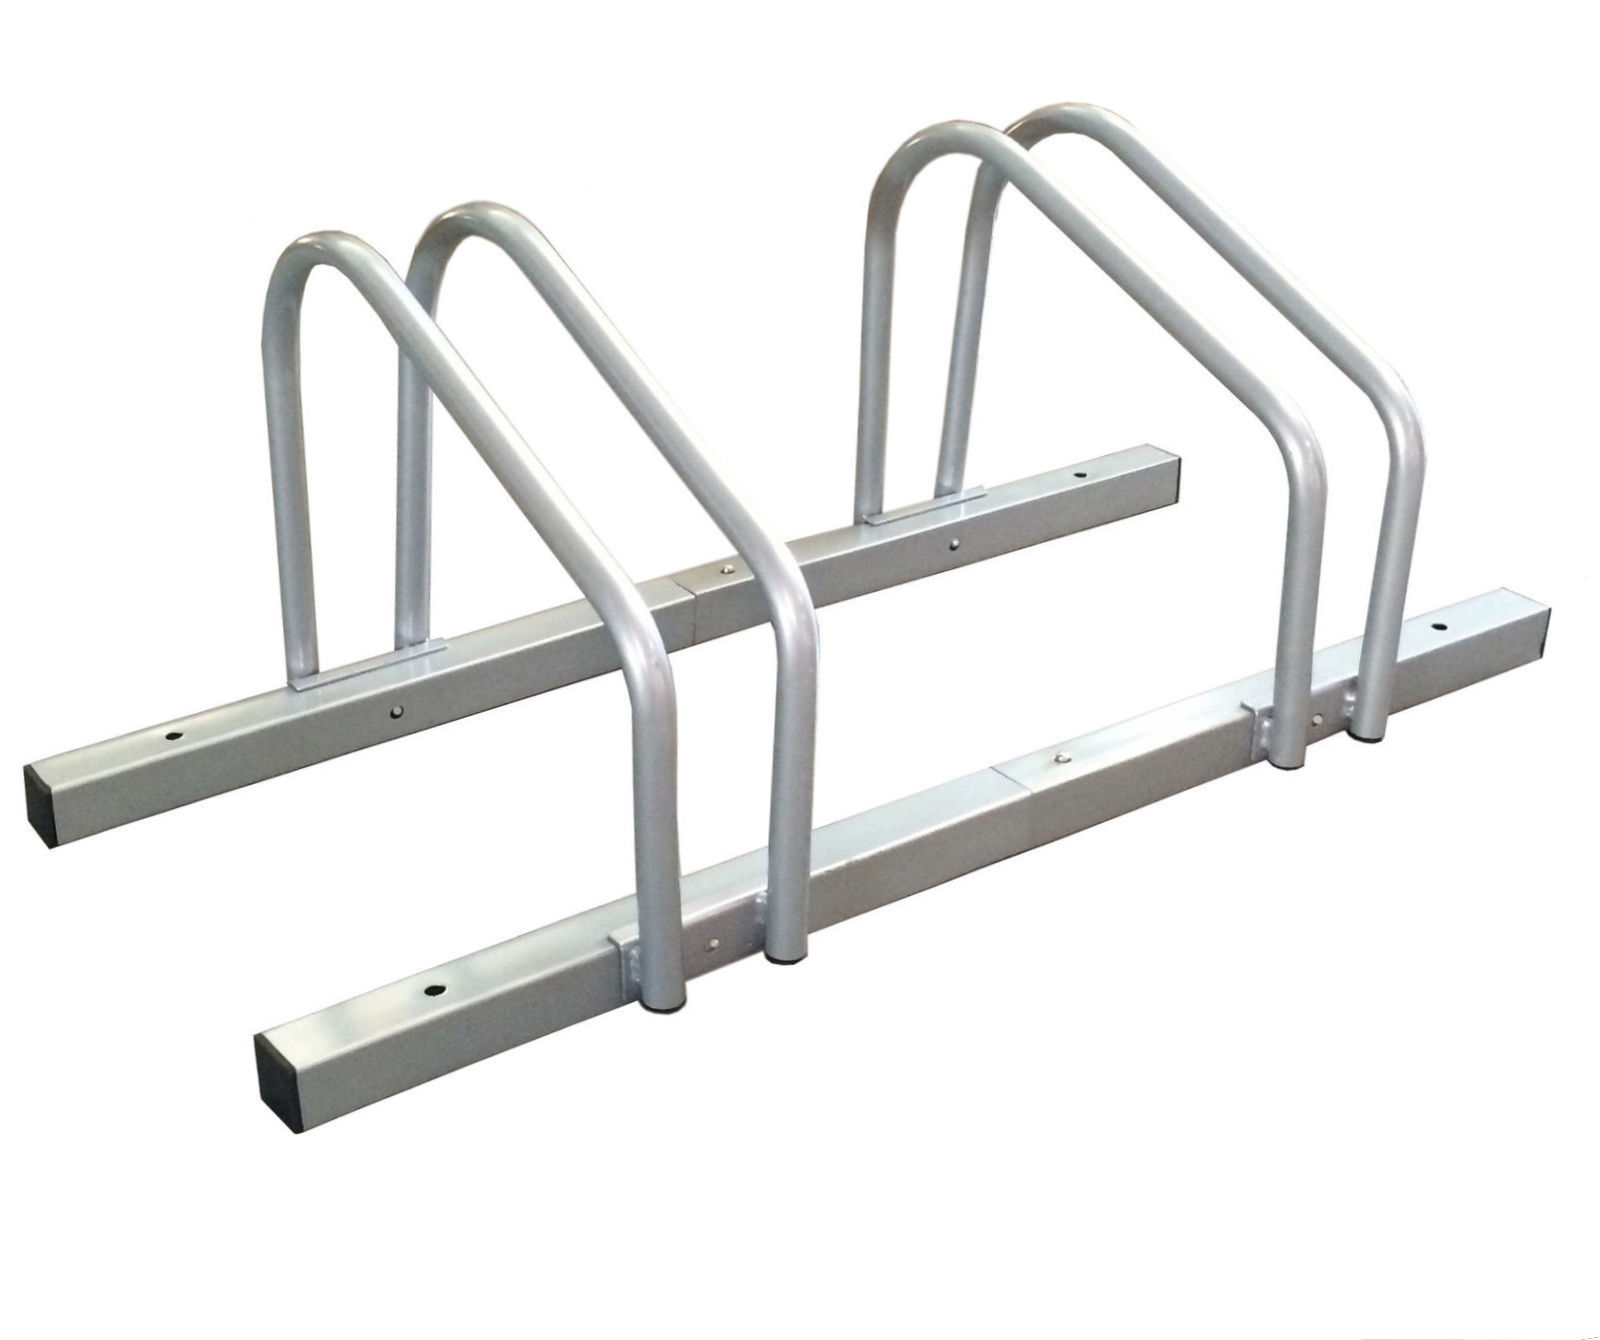 1 2 Bike Floor Parking Rack Storage Stand Bicycle Silver